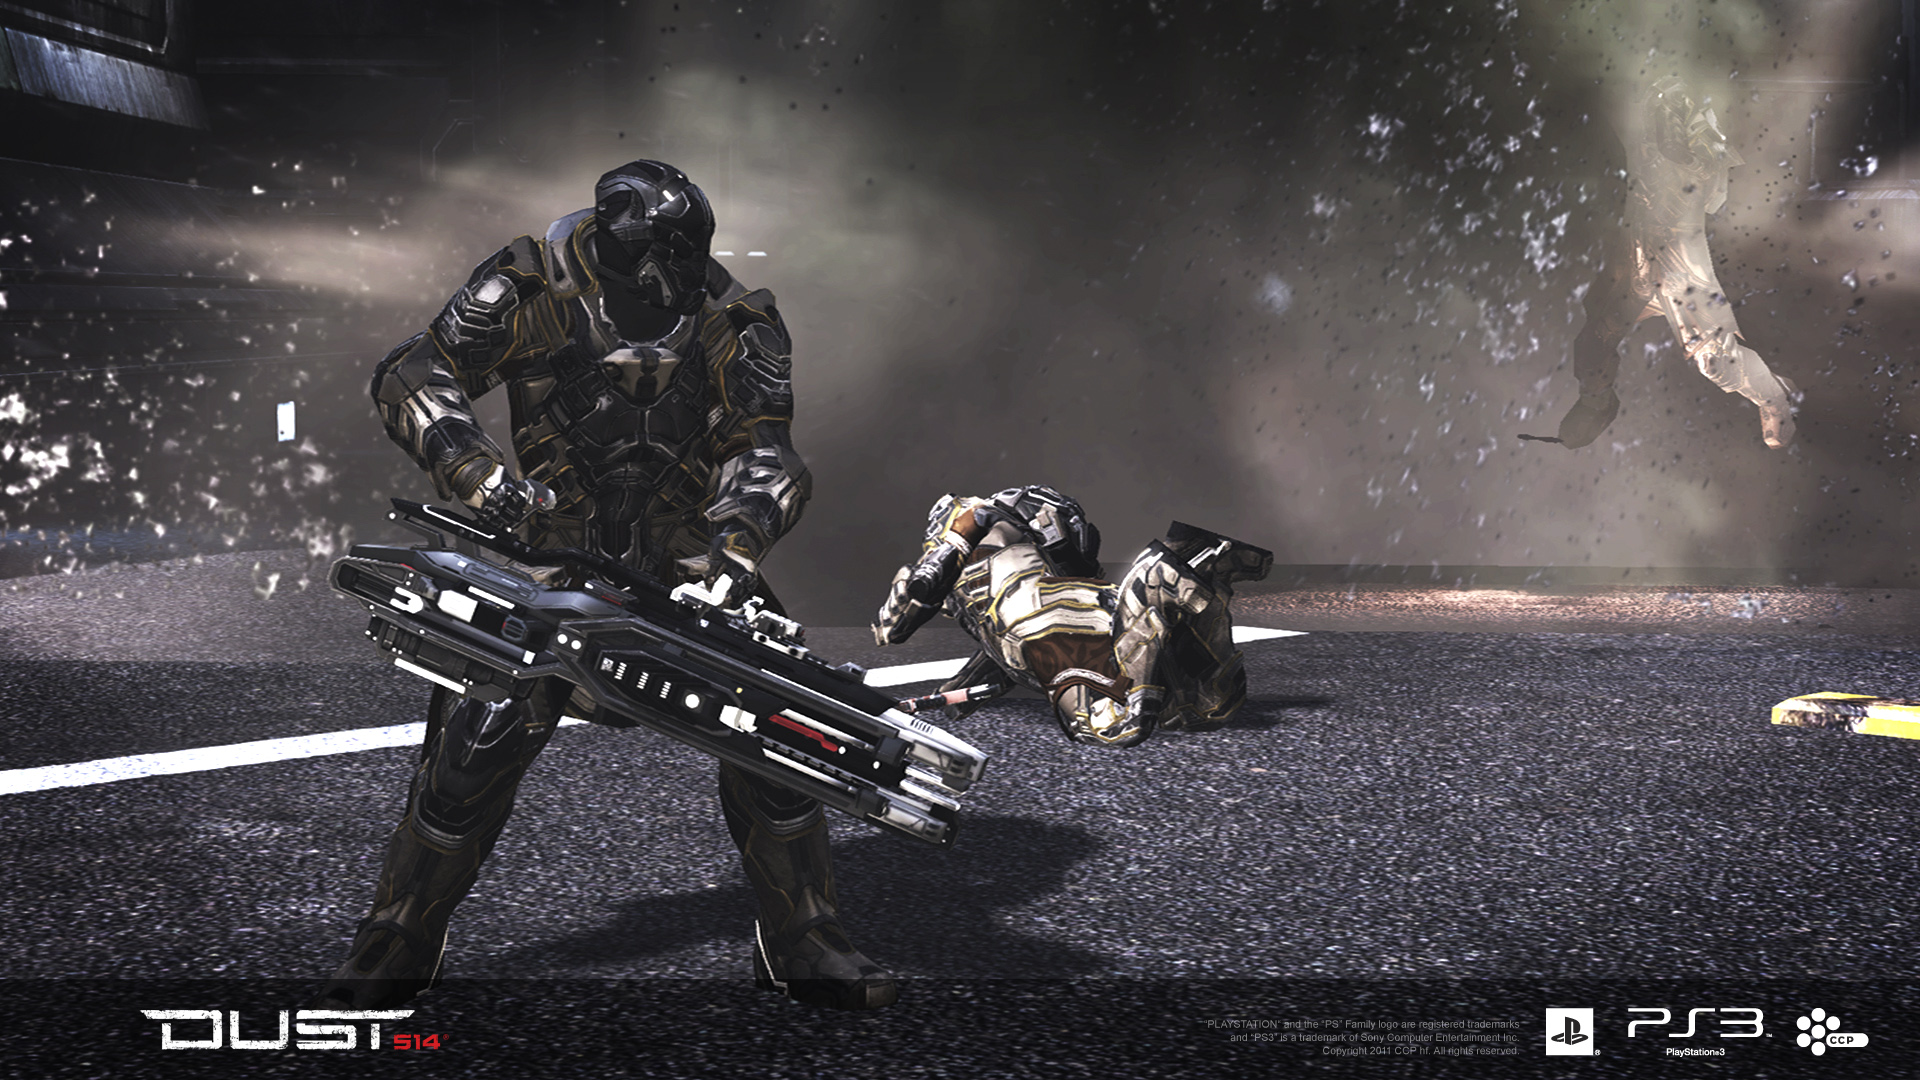 24 <b>Eve Dust 514 Wallpapers</b>